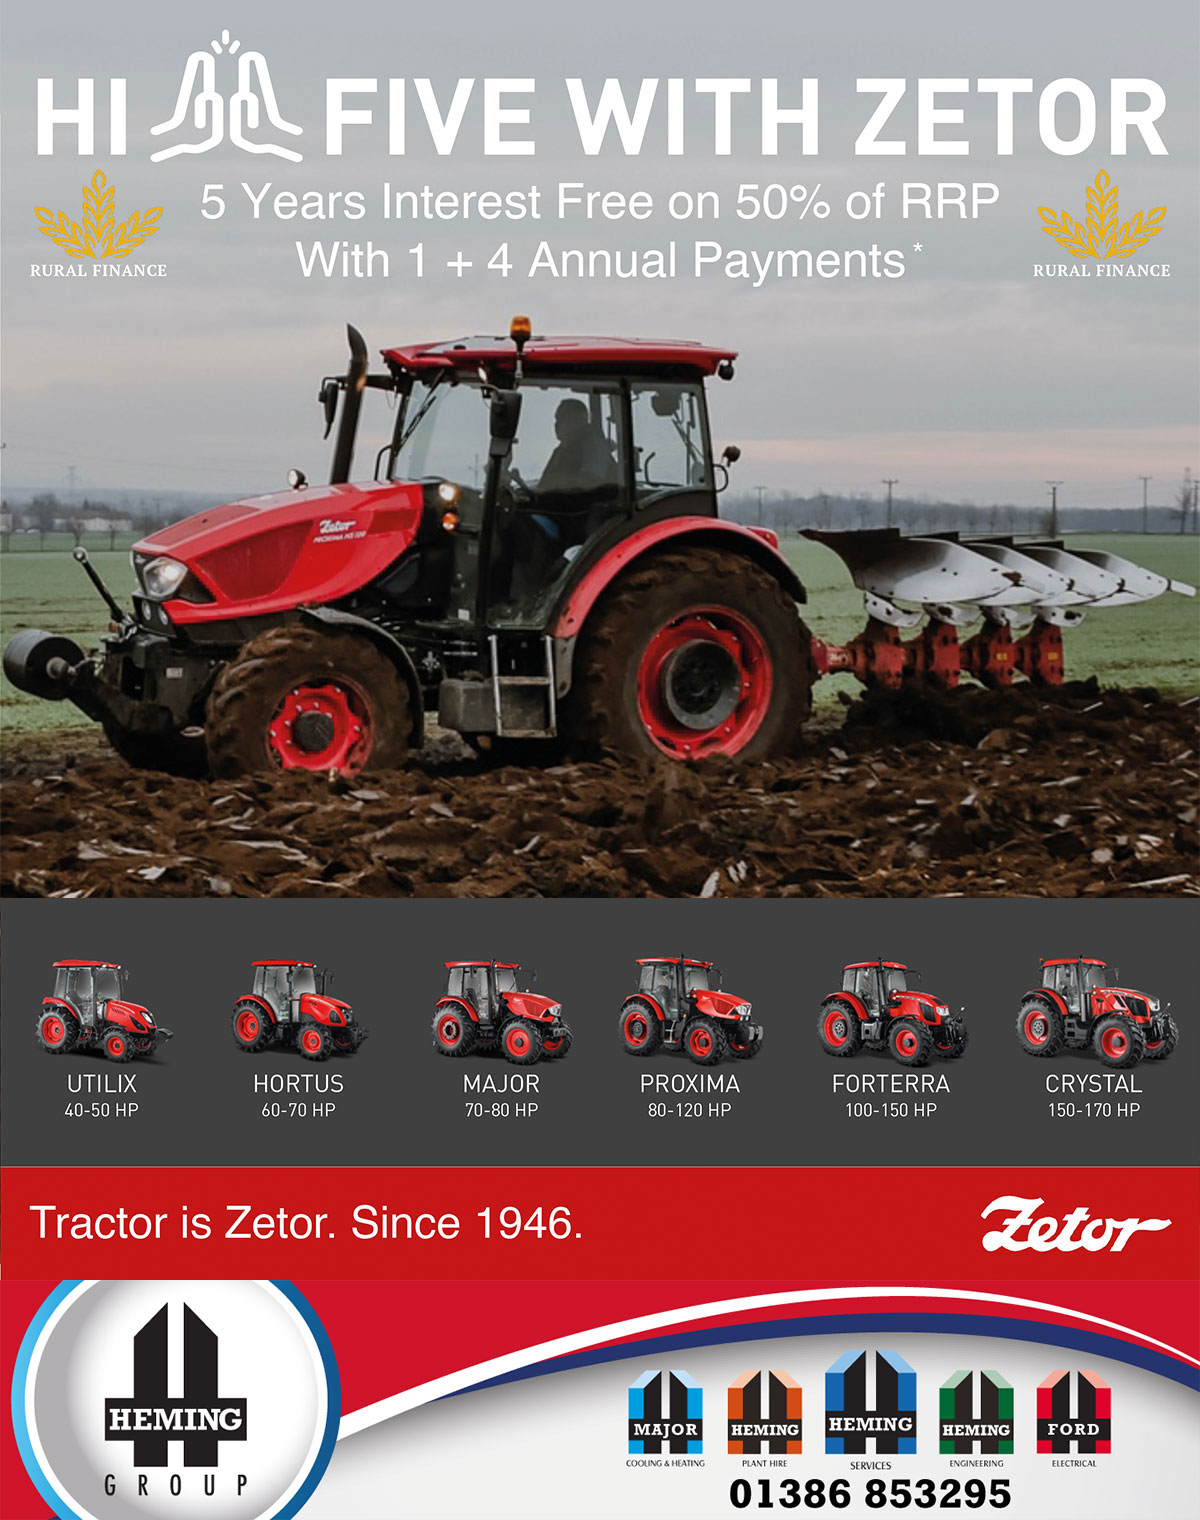 YOUR LOCAL ZETOR DEALERSHIP